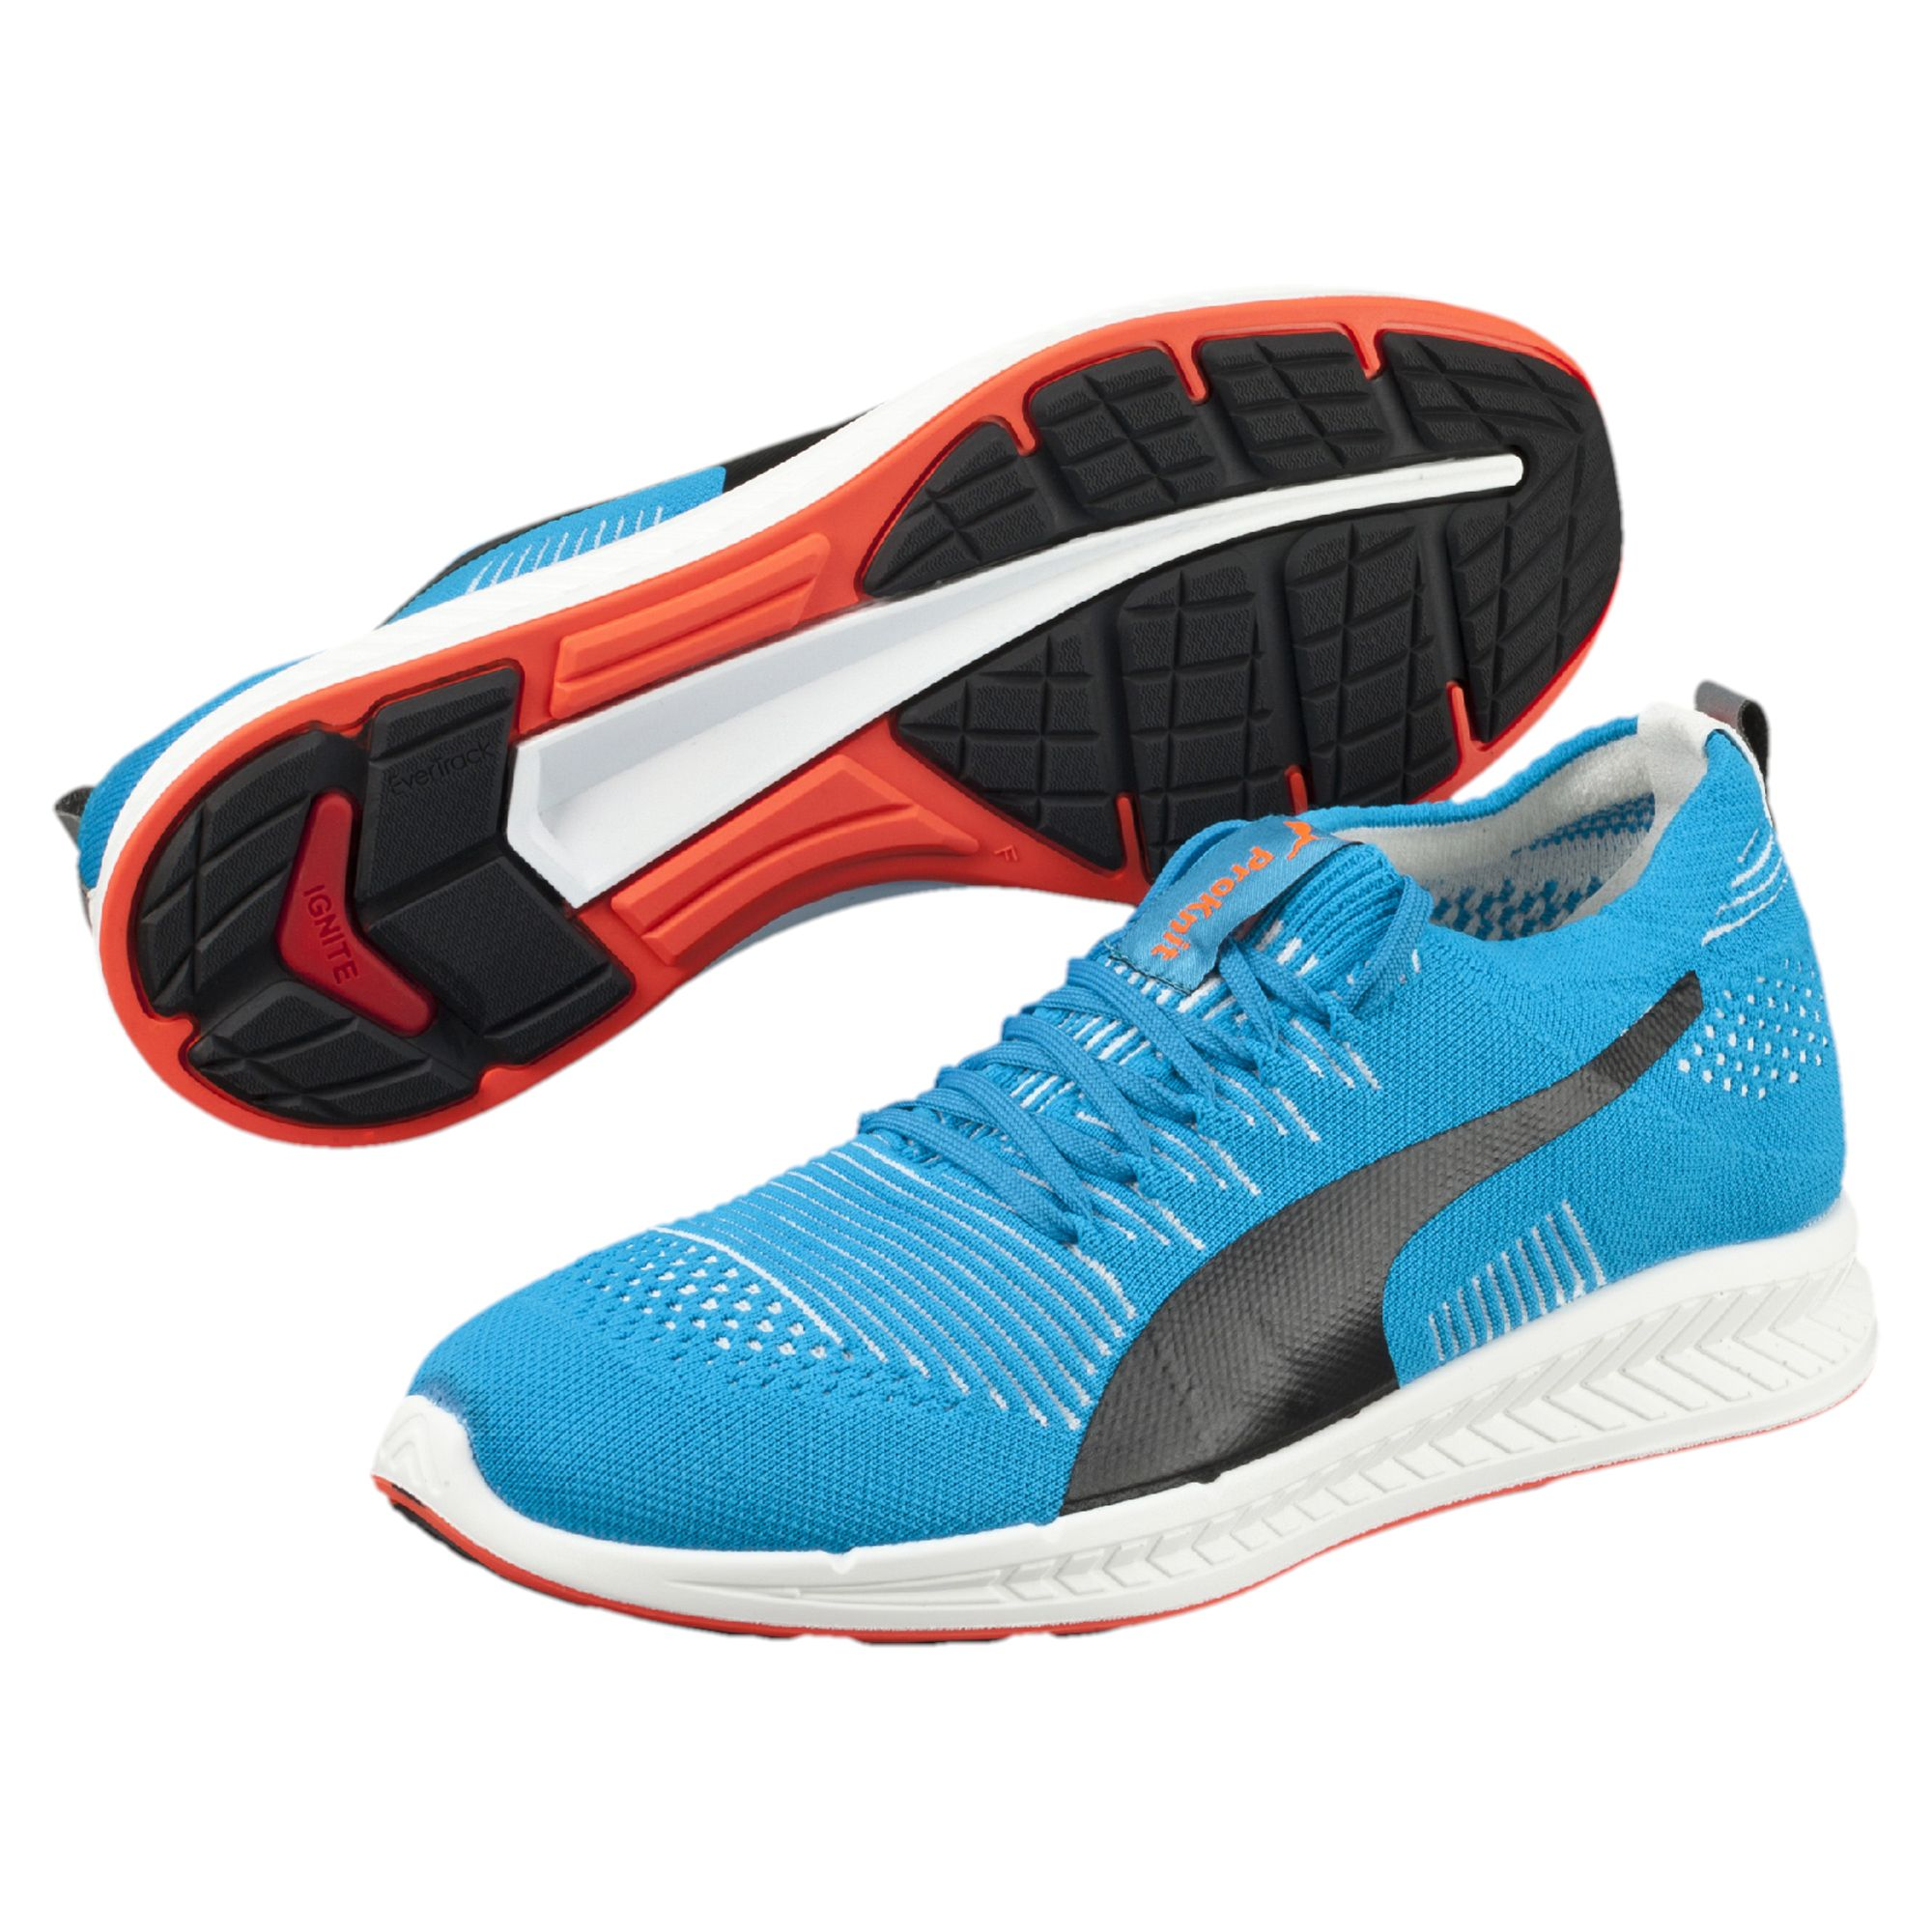 PUMA IGNITE ProKnit Running Shoes Running Low Boot Male Nuevo